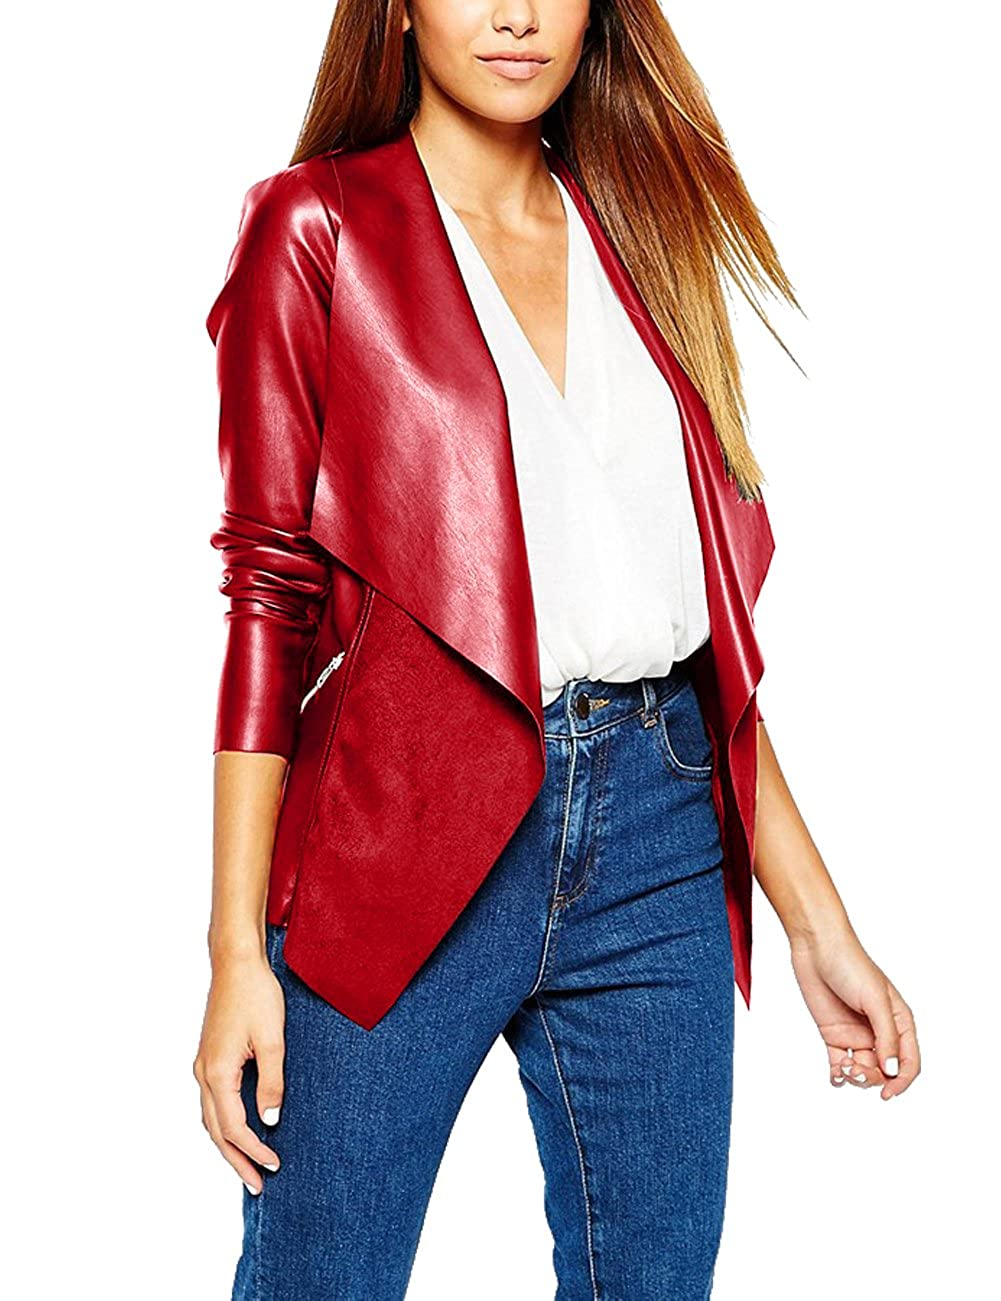 Eliacher Women's Slim Tailoring Faux Leather PU Short Jacket Coat